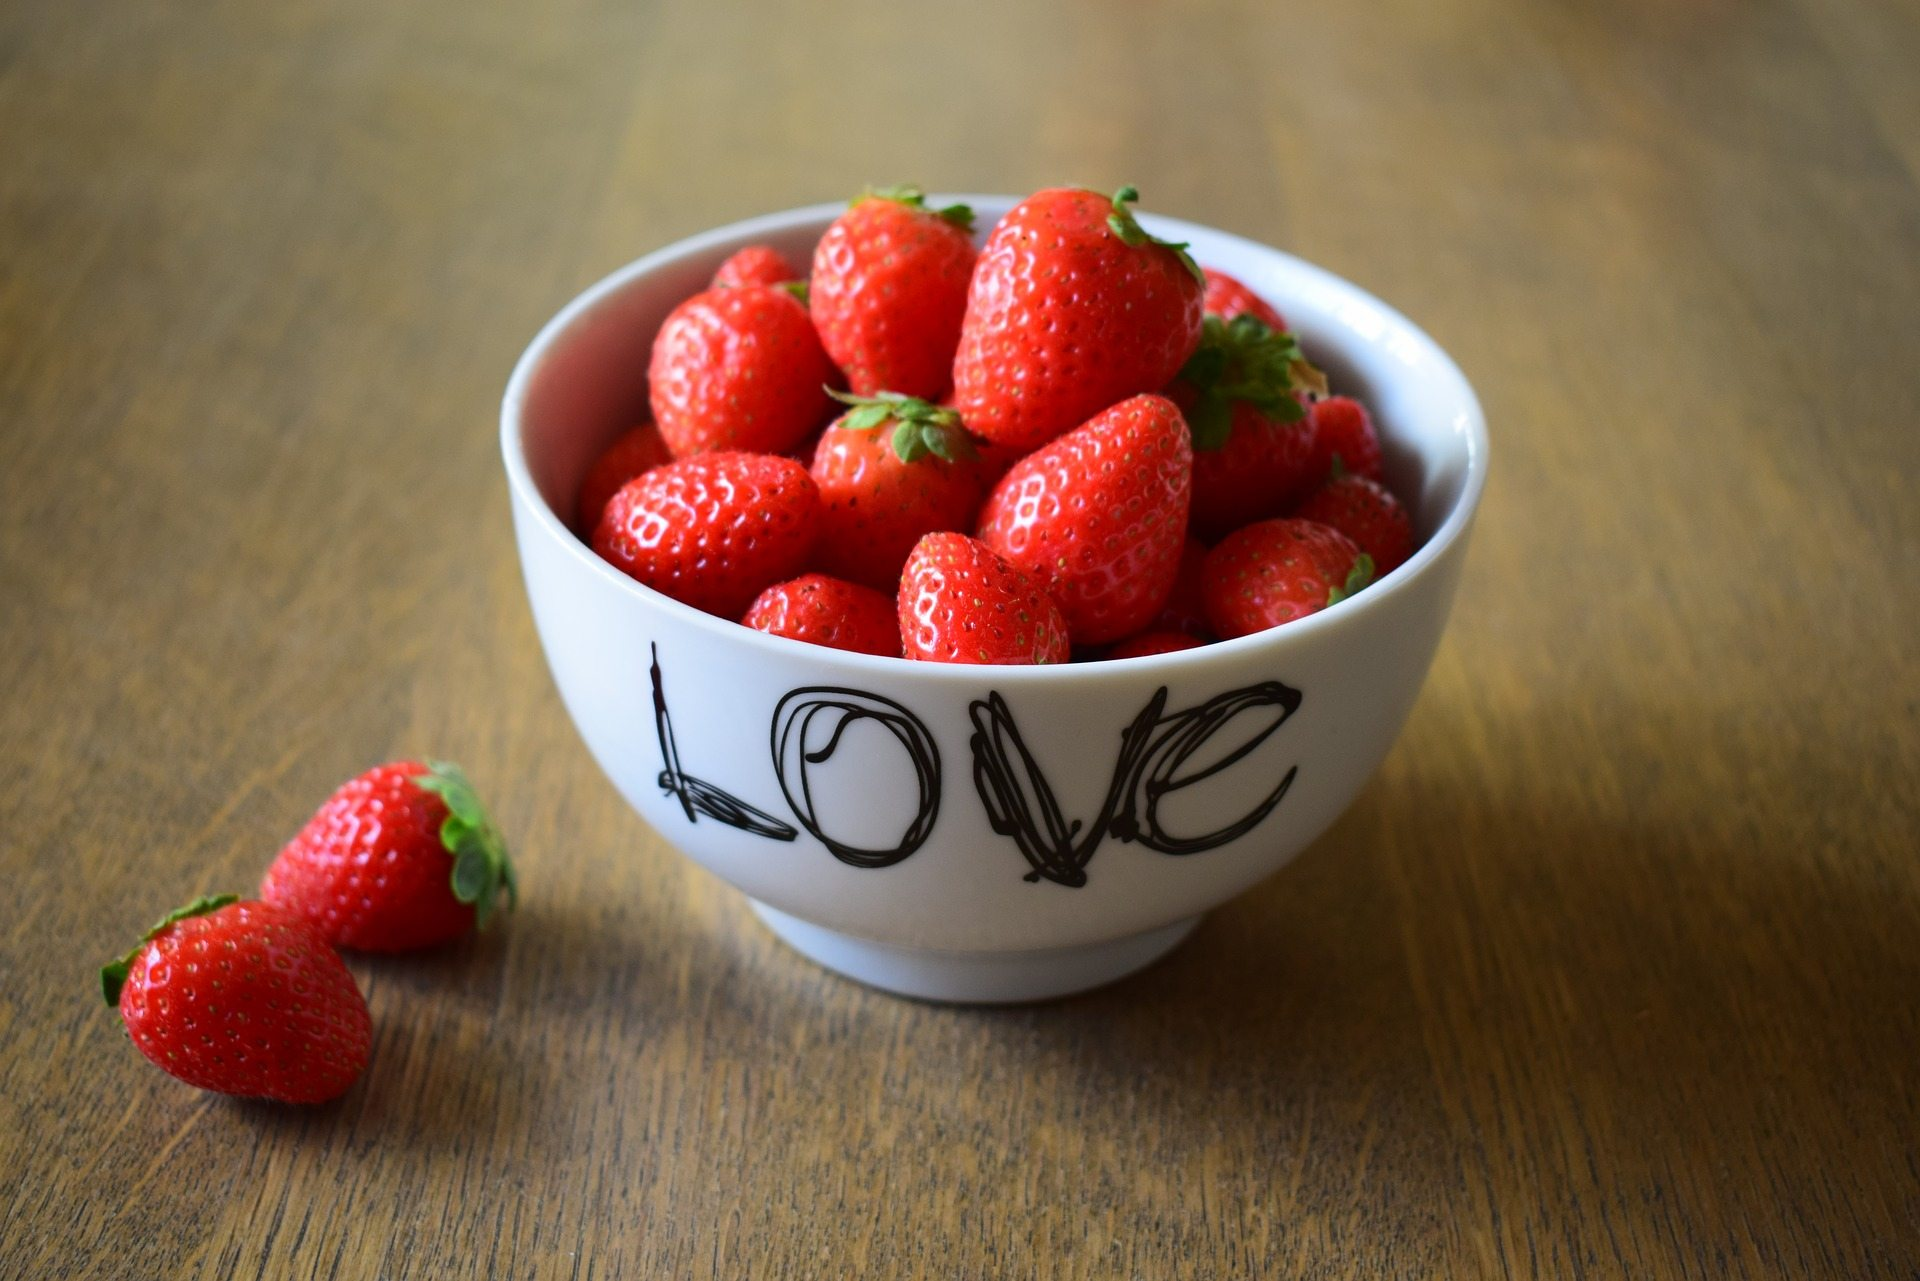 Showing love - Pixabay strawberries-1710108_1920